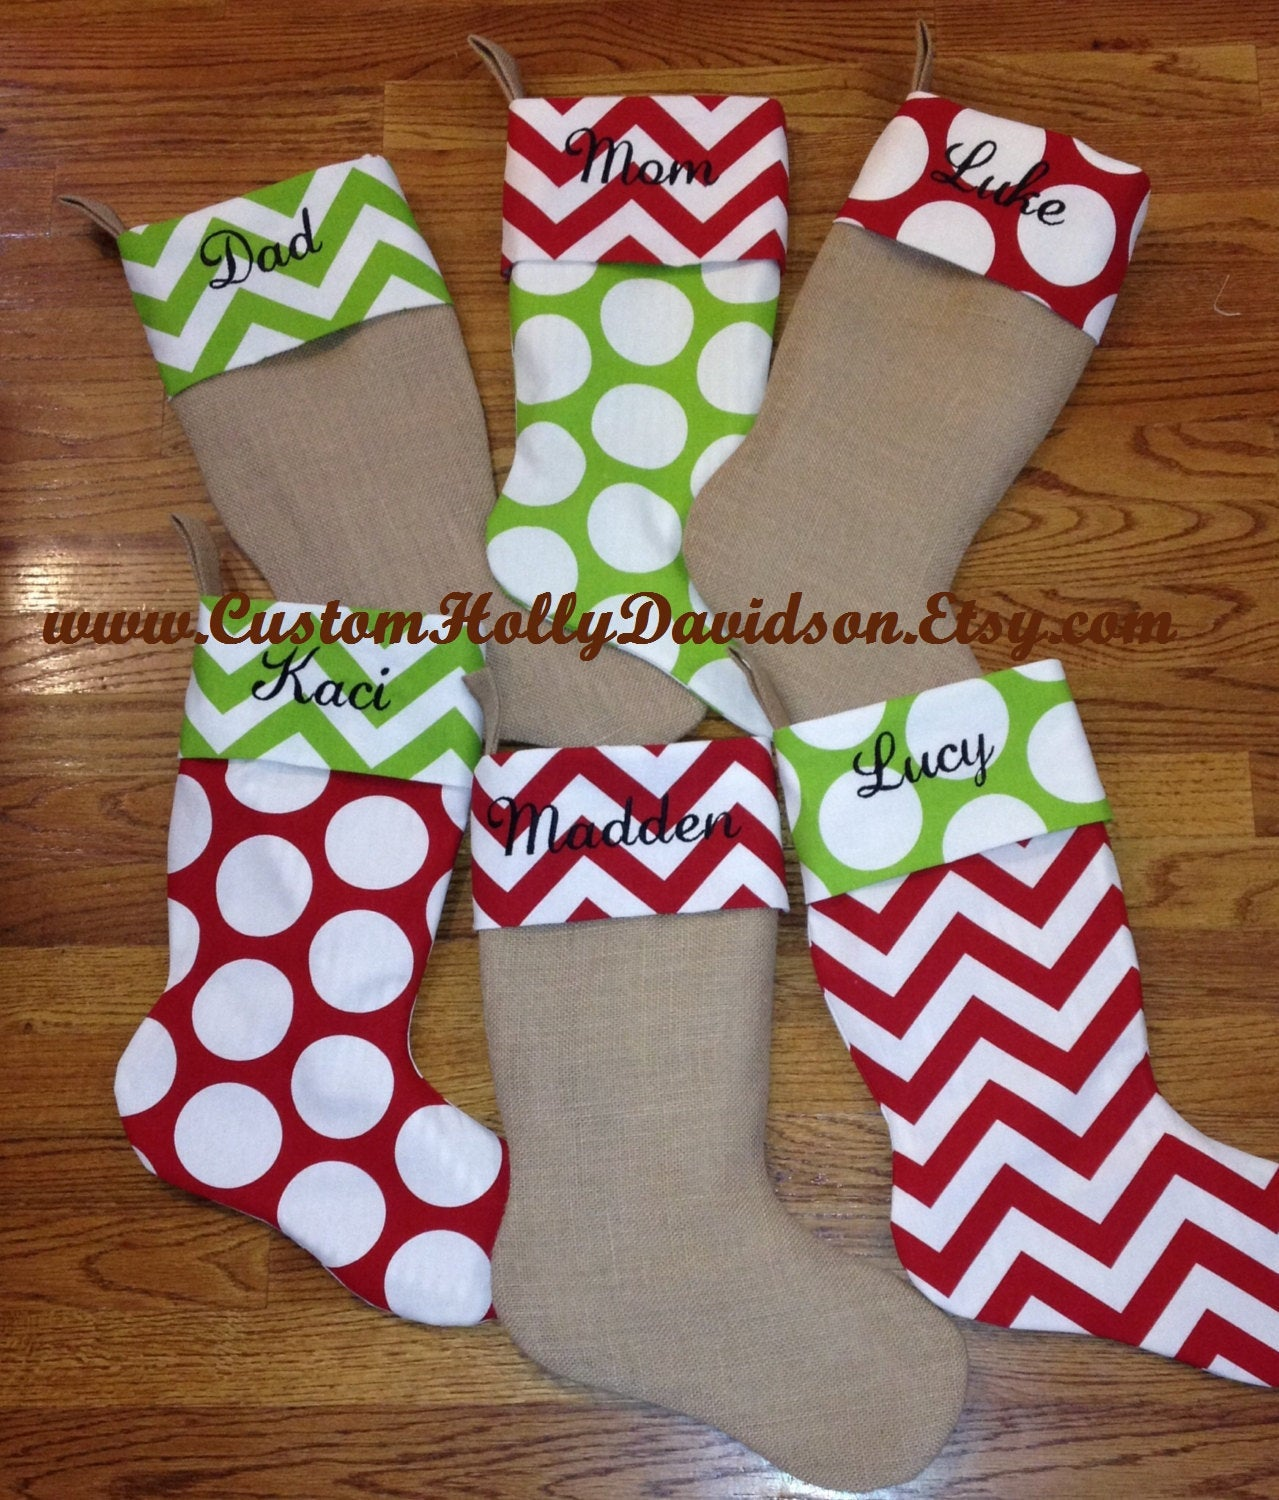 Set of 2 Custom made Christmas Stockings w/ FREE SHIPPING!